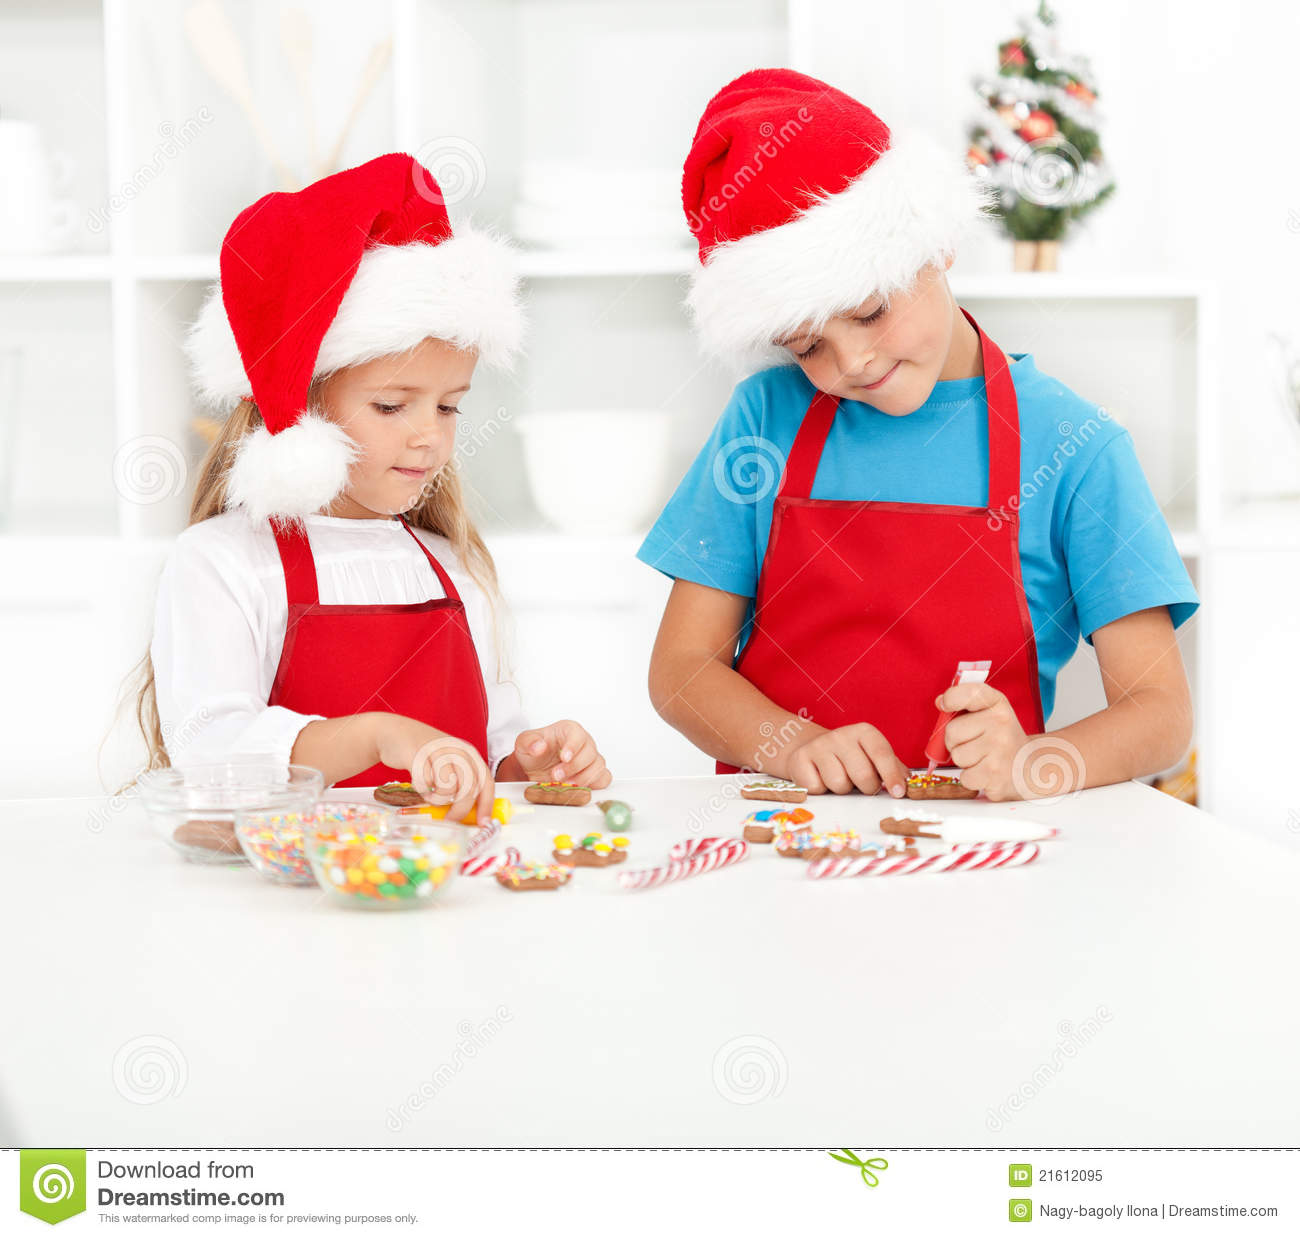 Kids Decorating For Christmas kids decorating christmas cookies royalty free stock photo - image